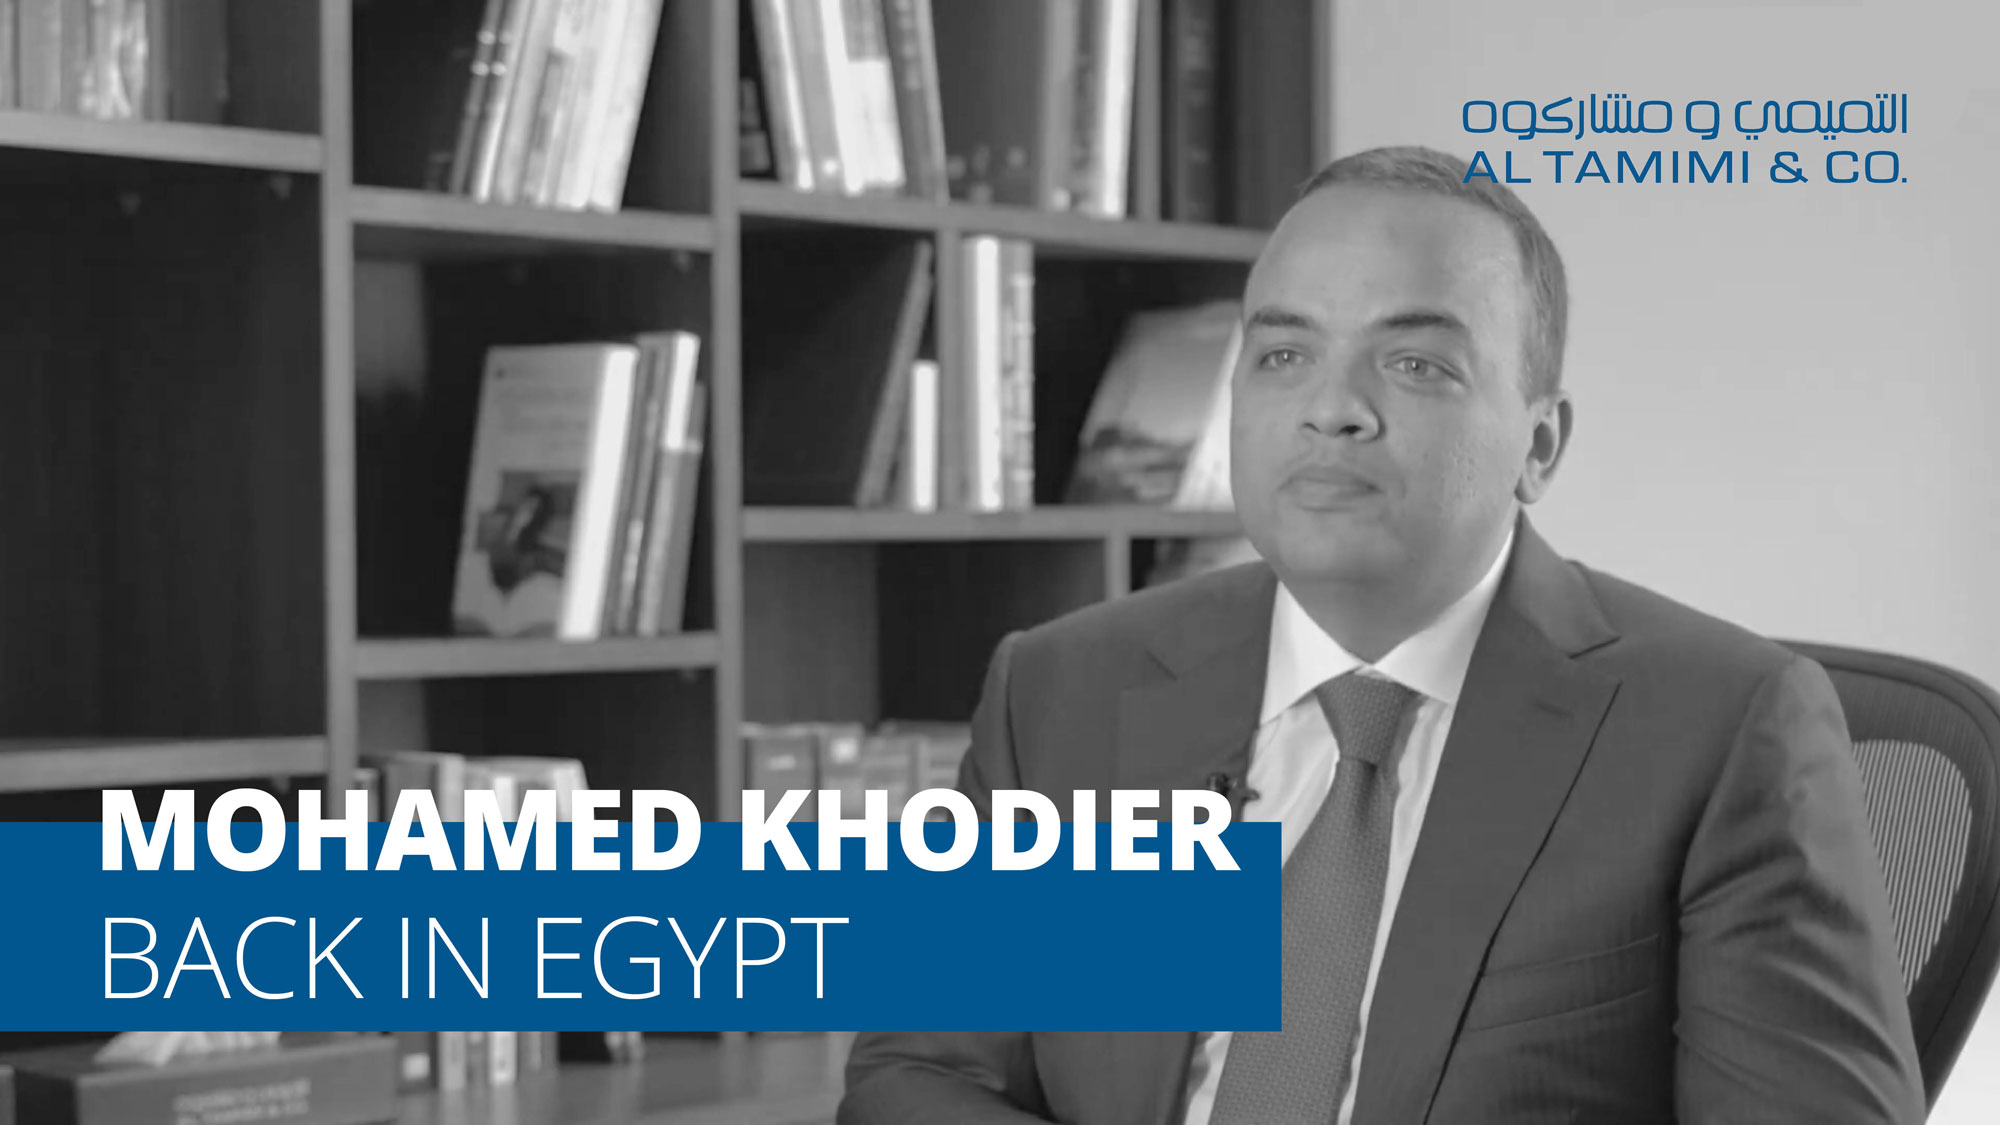 Mohamed Khodeir back in Egypt!